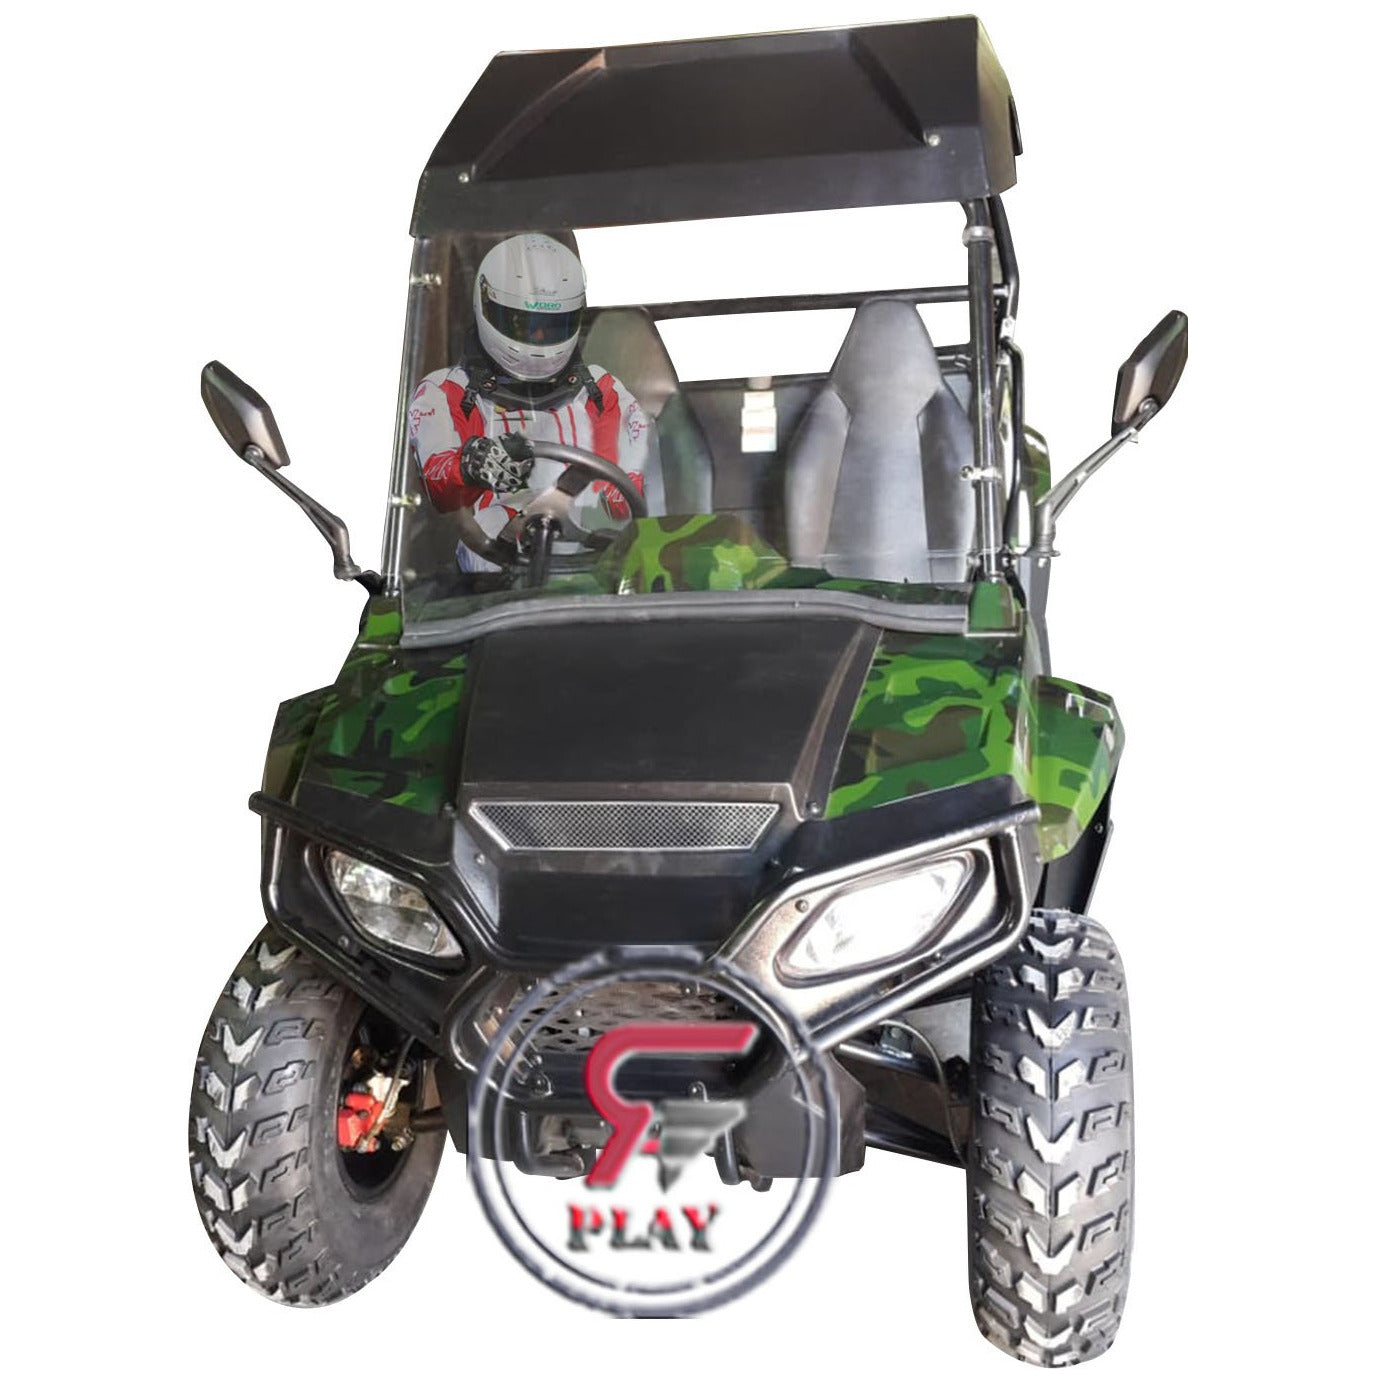 Raf 200 Cc Off Road Fuel Utv Buggy 2 seater - Army Green - rafplay